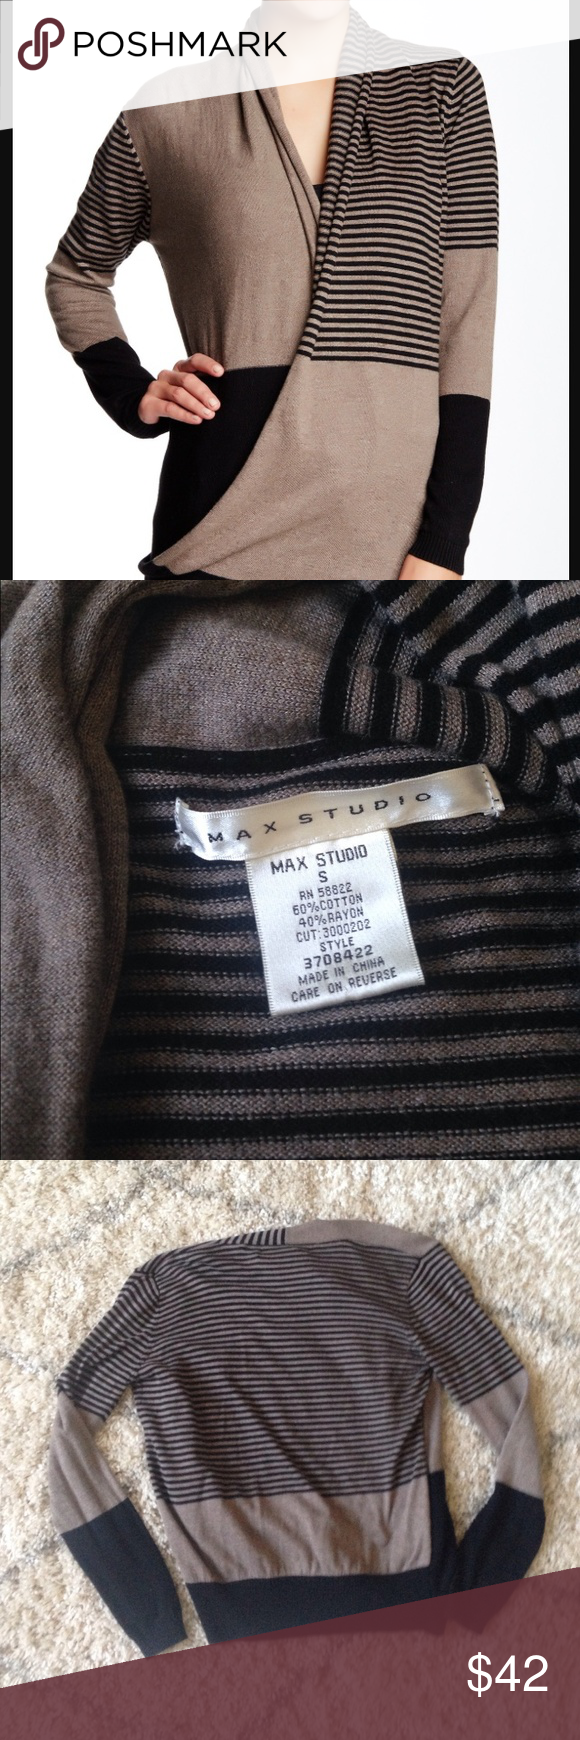 Max Studio Wrap Sweater! Designer sweater! Max Studio sweater and in amazing condition! Only worn a couple times. Originally purchased from Nordstrom! No trades or Paypal please and this comes from a smoke free home! Max Studio Sweaters